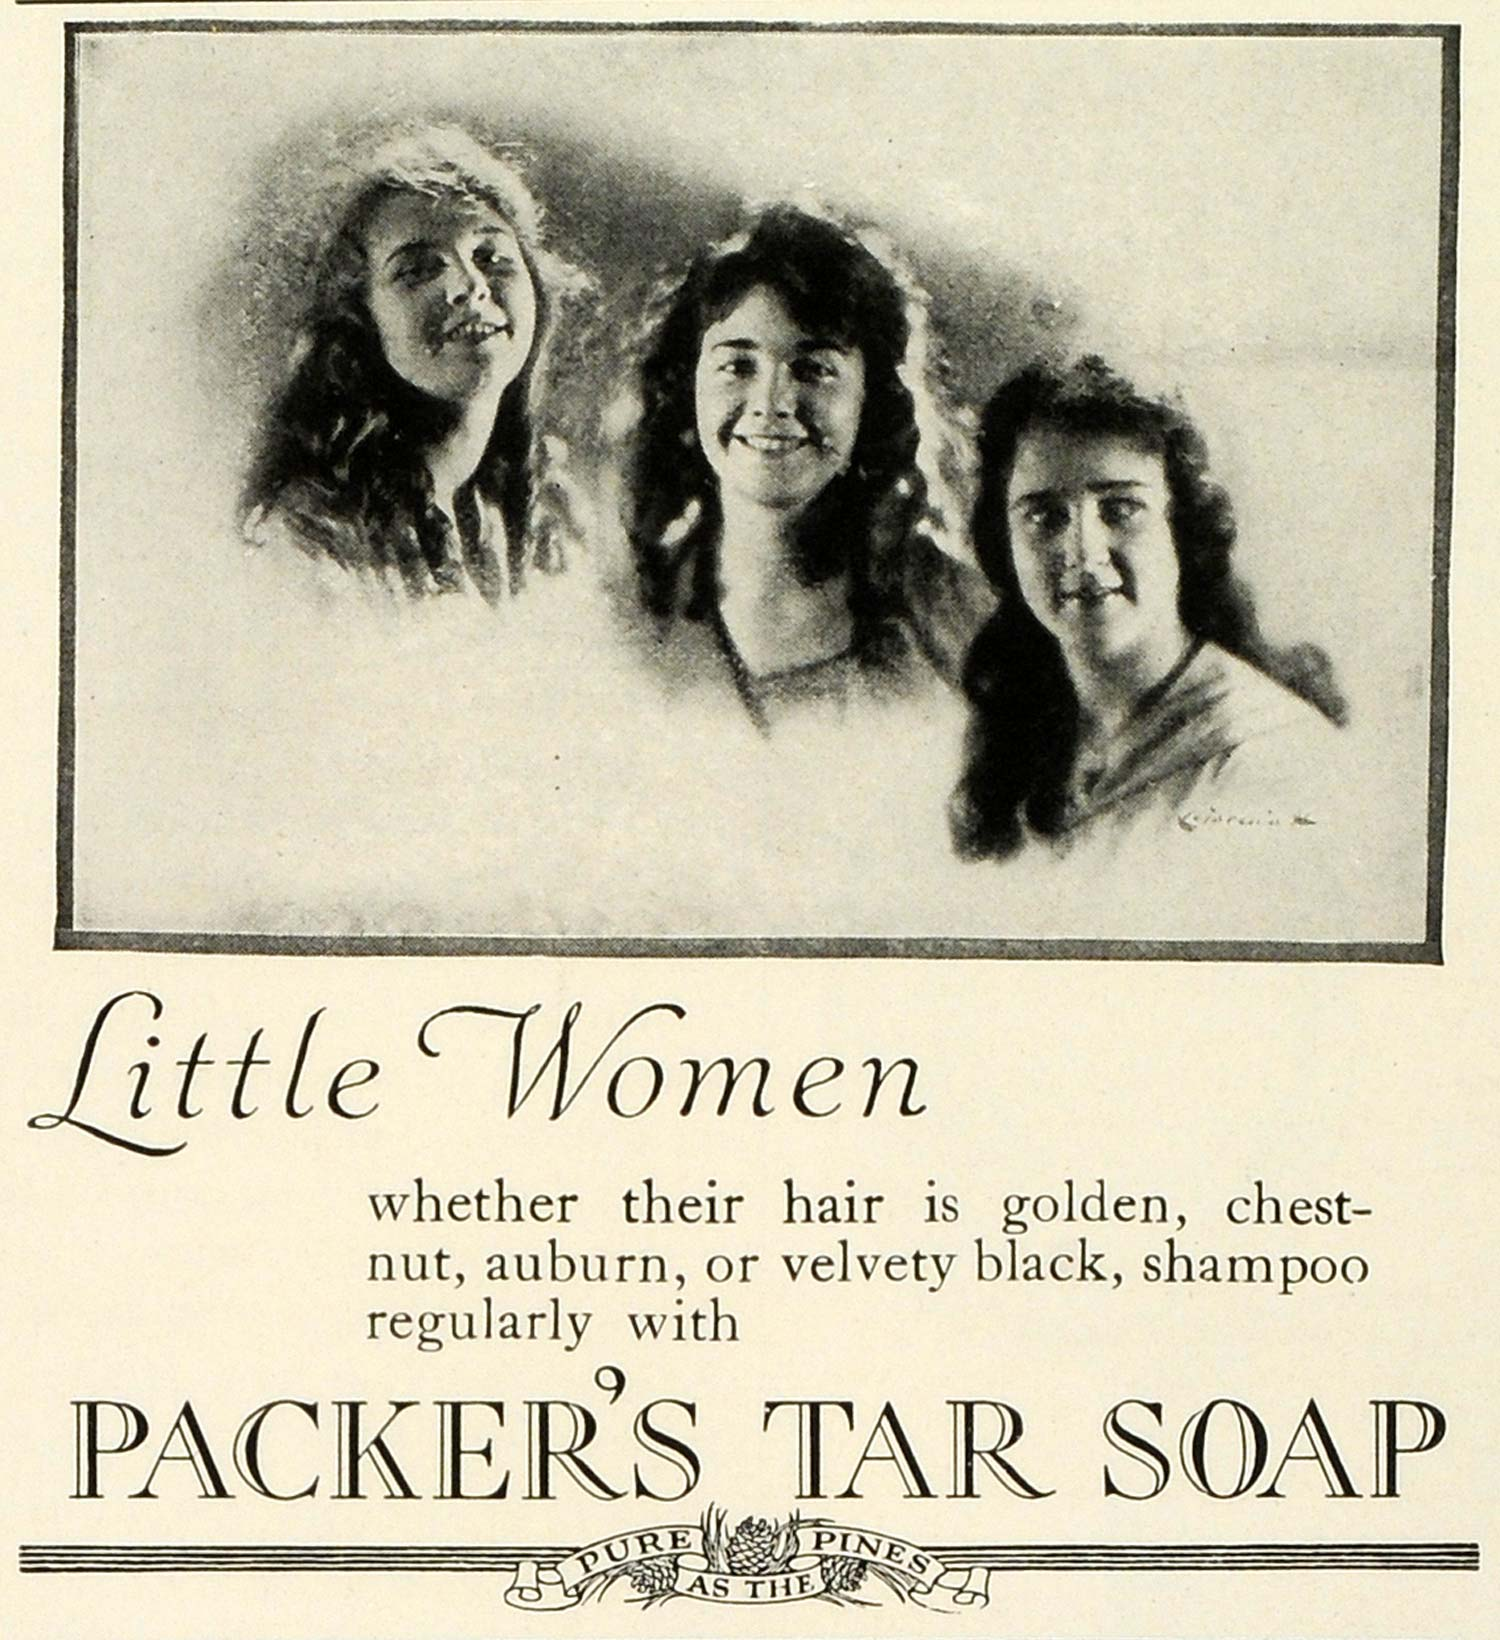 1924 Ad Packers Tar Soap Shampoo Hair Care Beauty Products Little Women THM